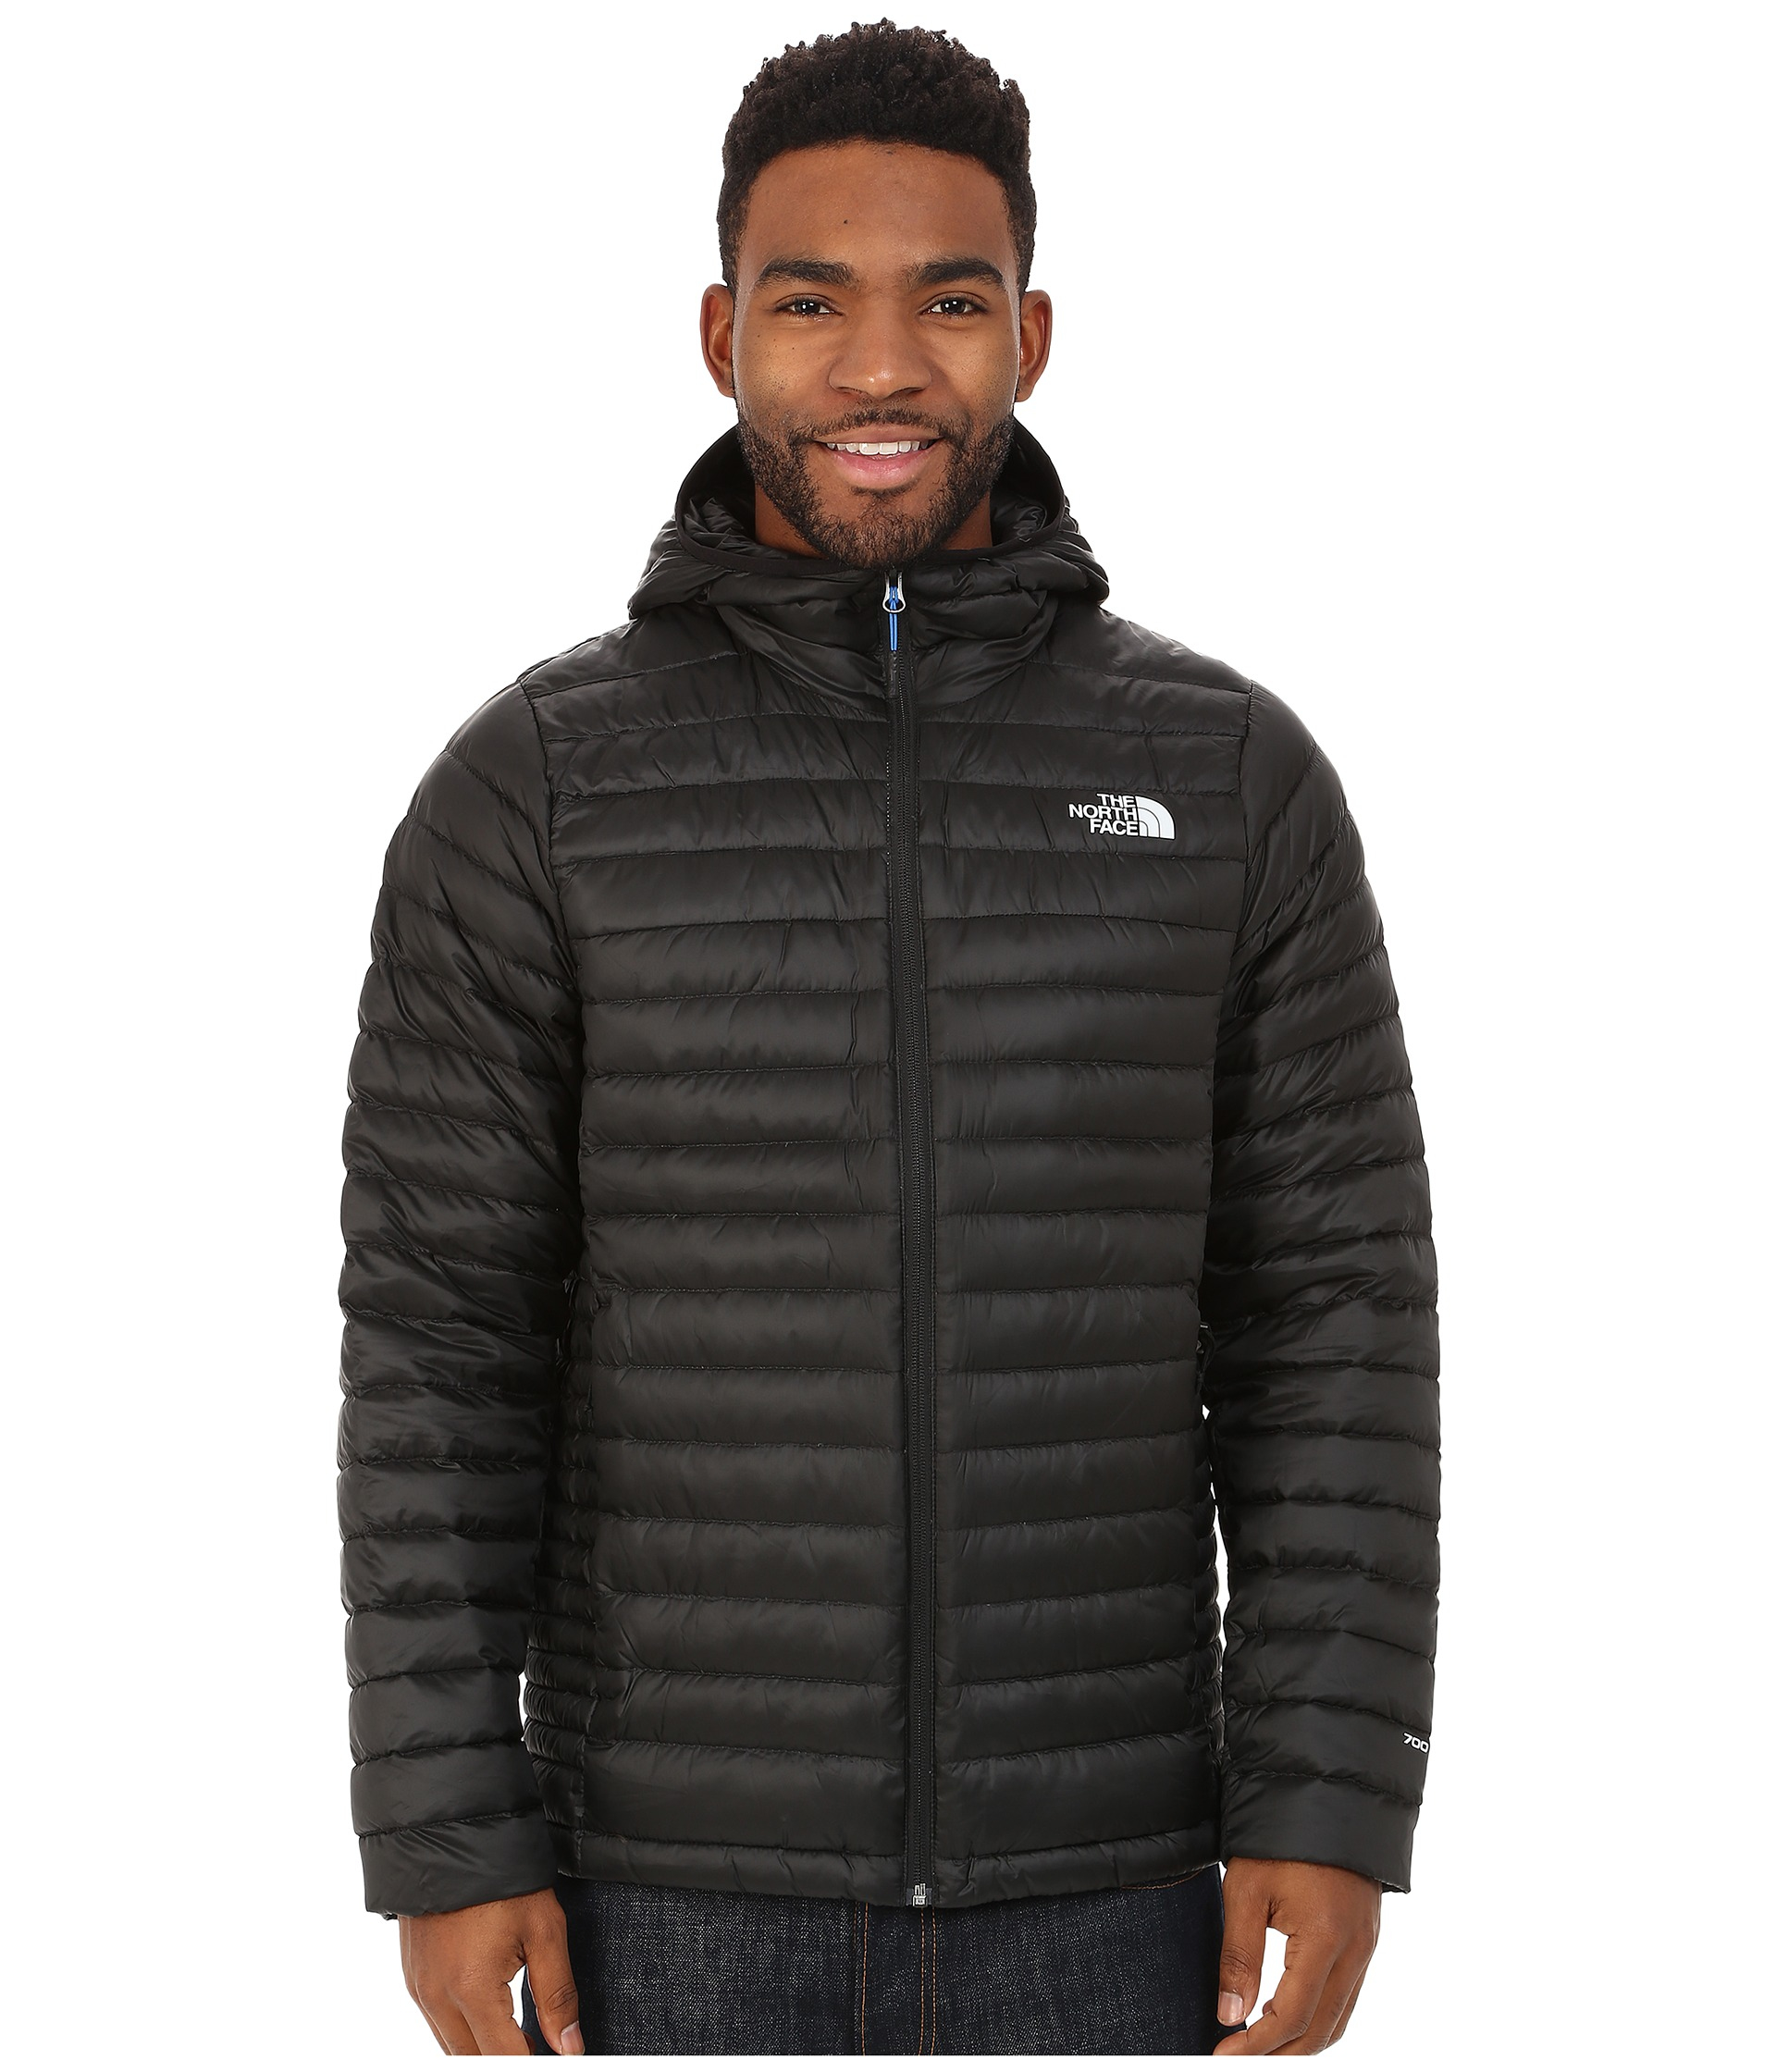 cd9a86958ae0 Lyst - The North Face Tonnerro Hoodie in Black for Men